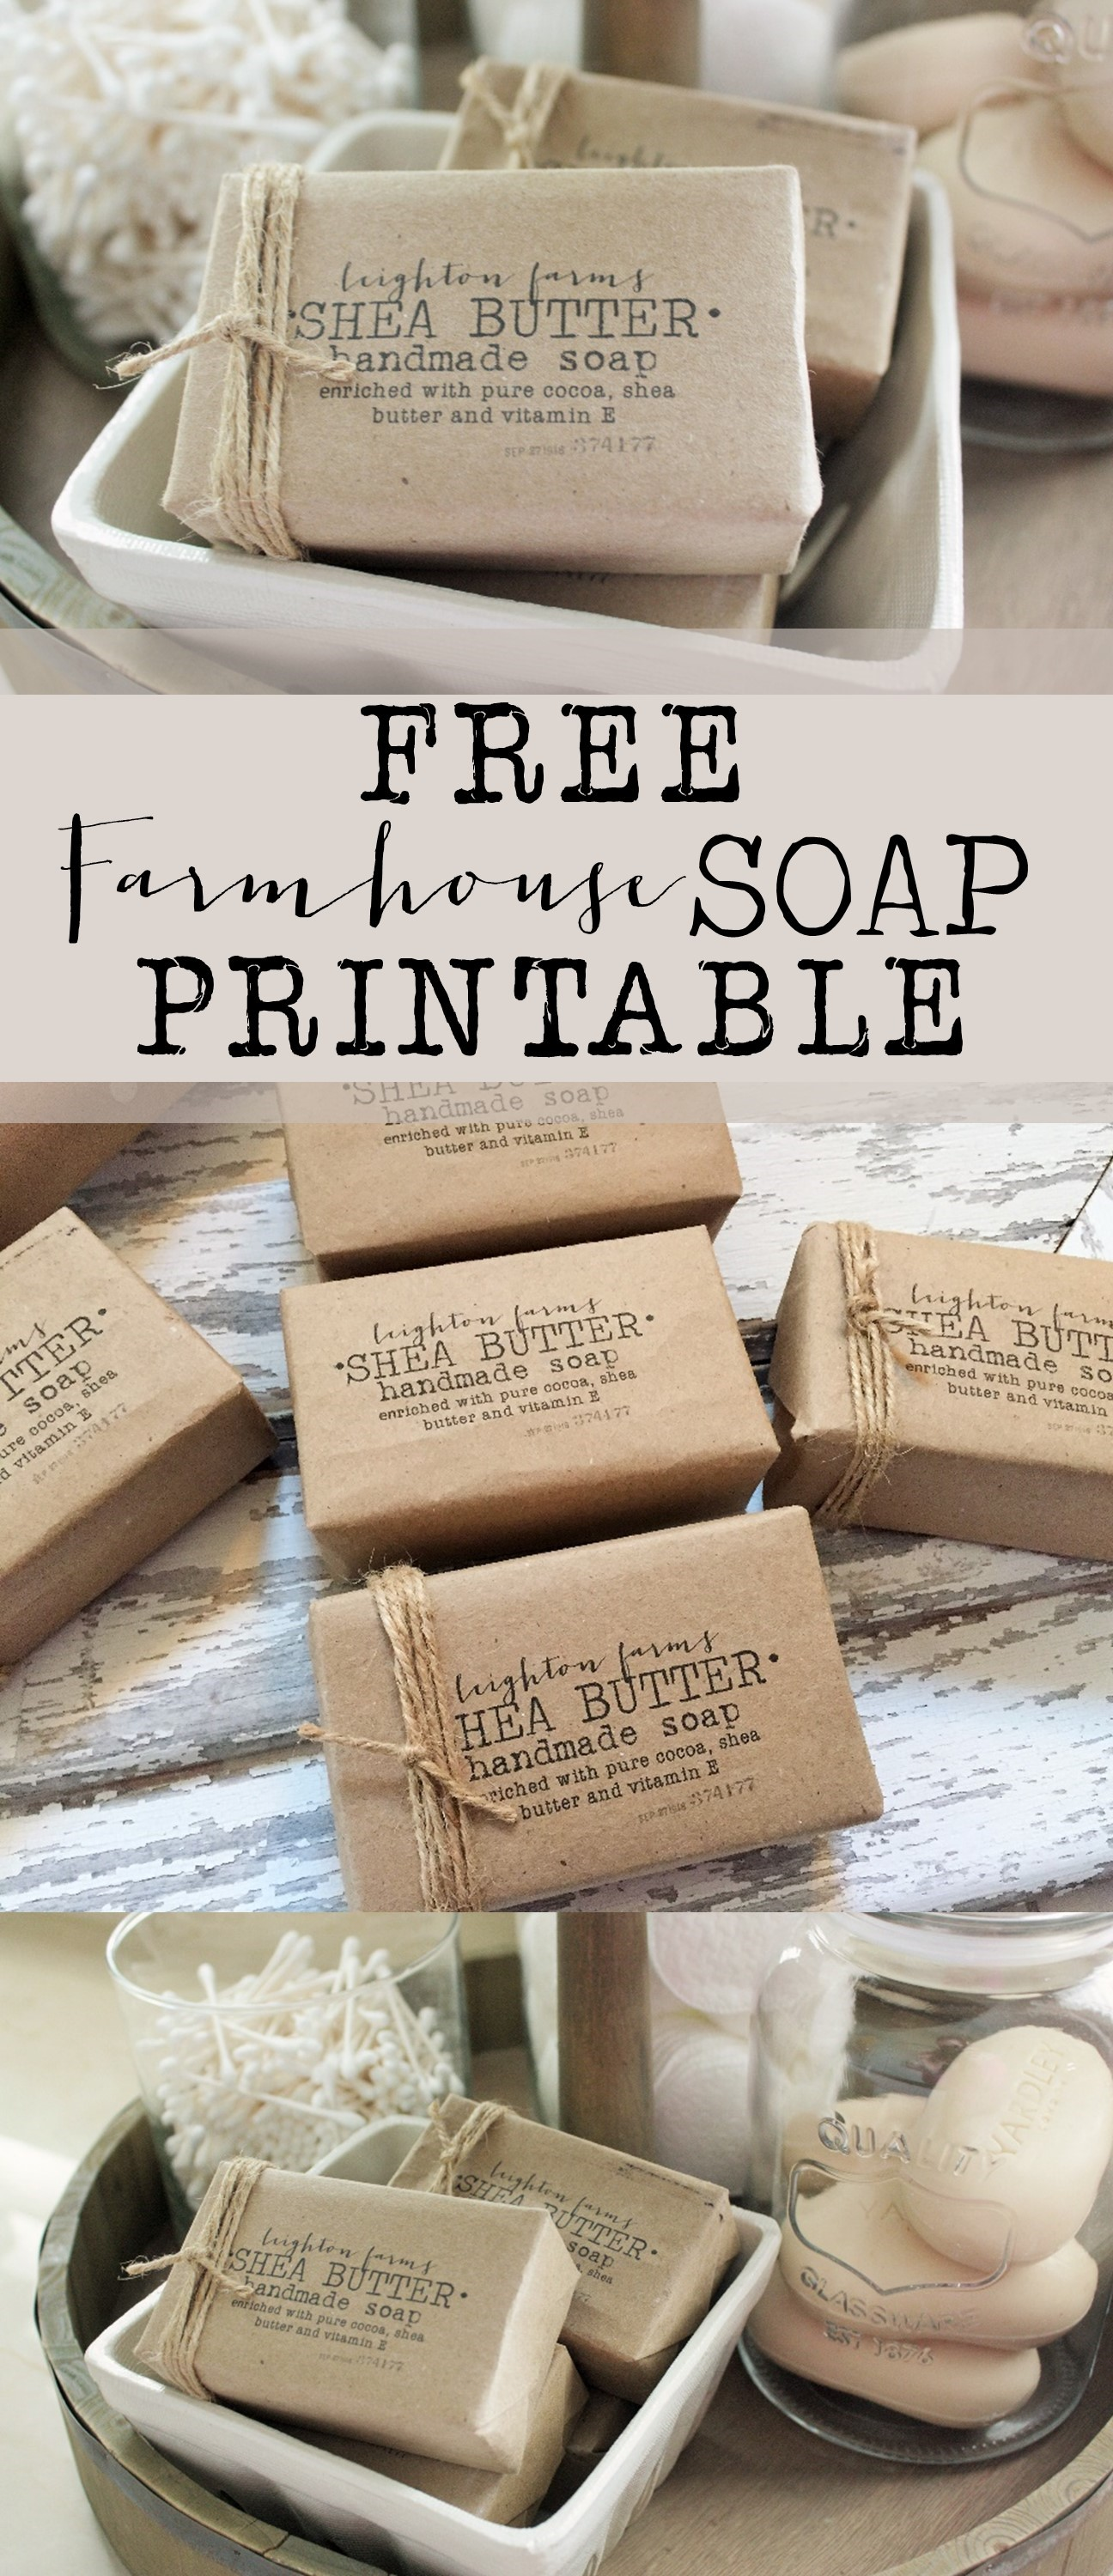 photograph about Printable Soap Labels known as Cost-free Farmhouse Cleaning soap Printable - Area of Hargrove